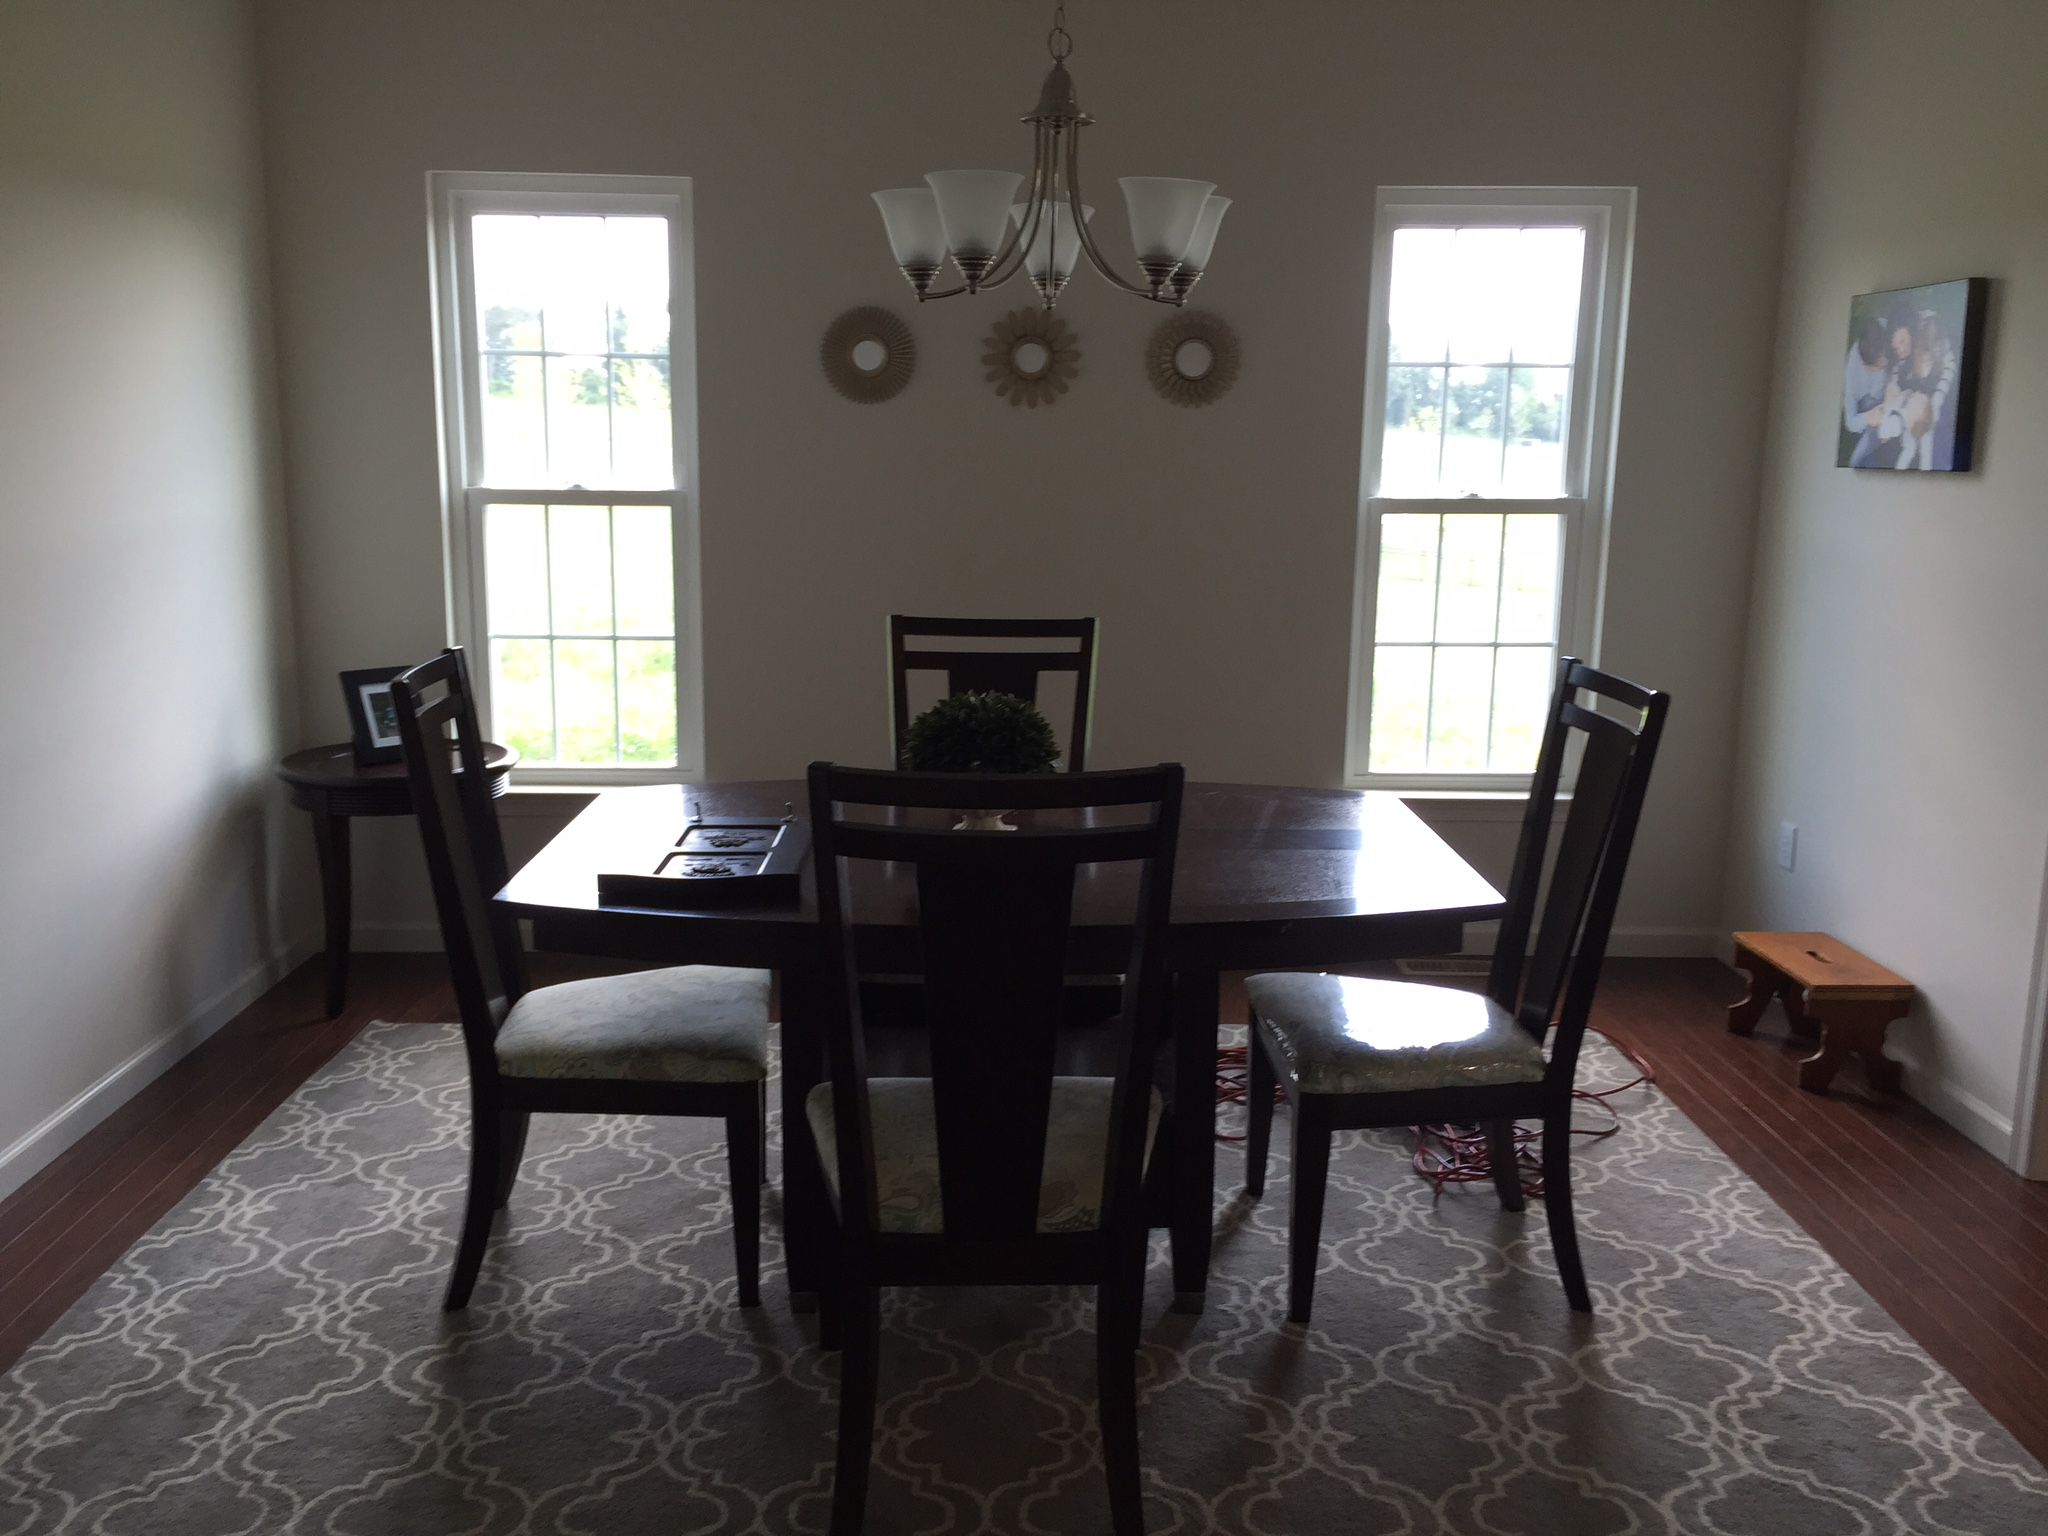 The before picture in the transitional east coast dining room.